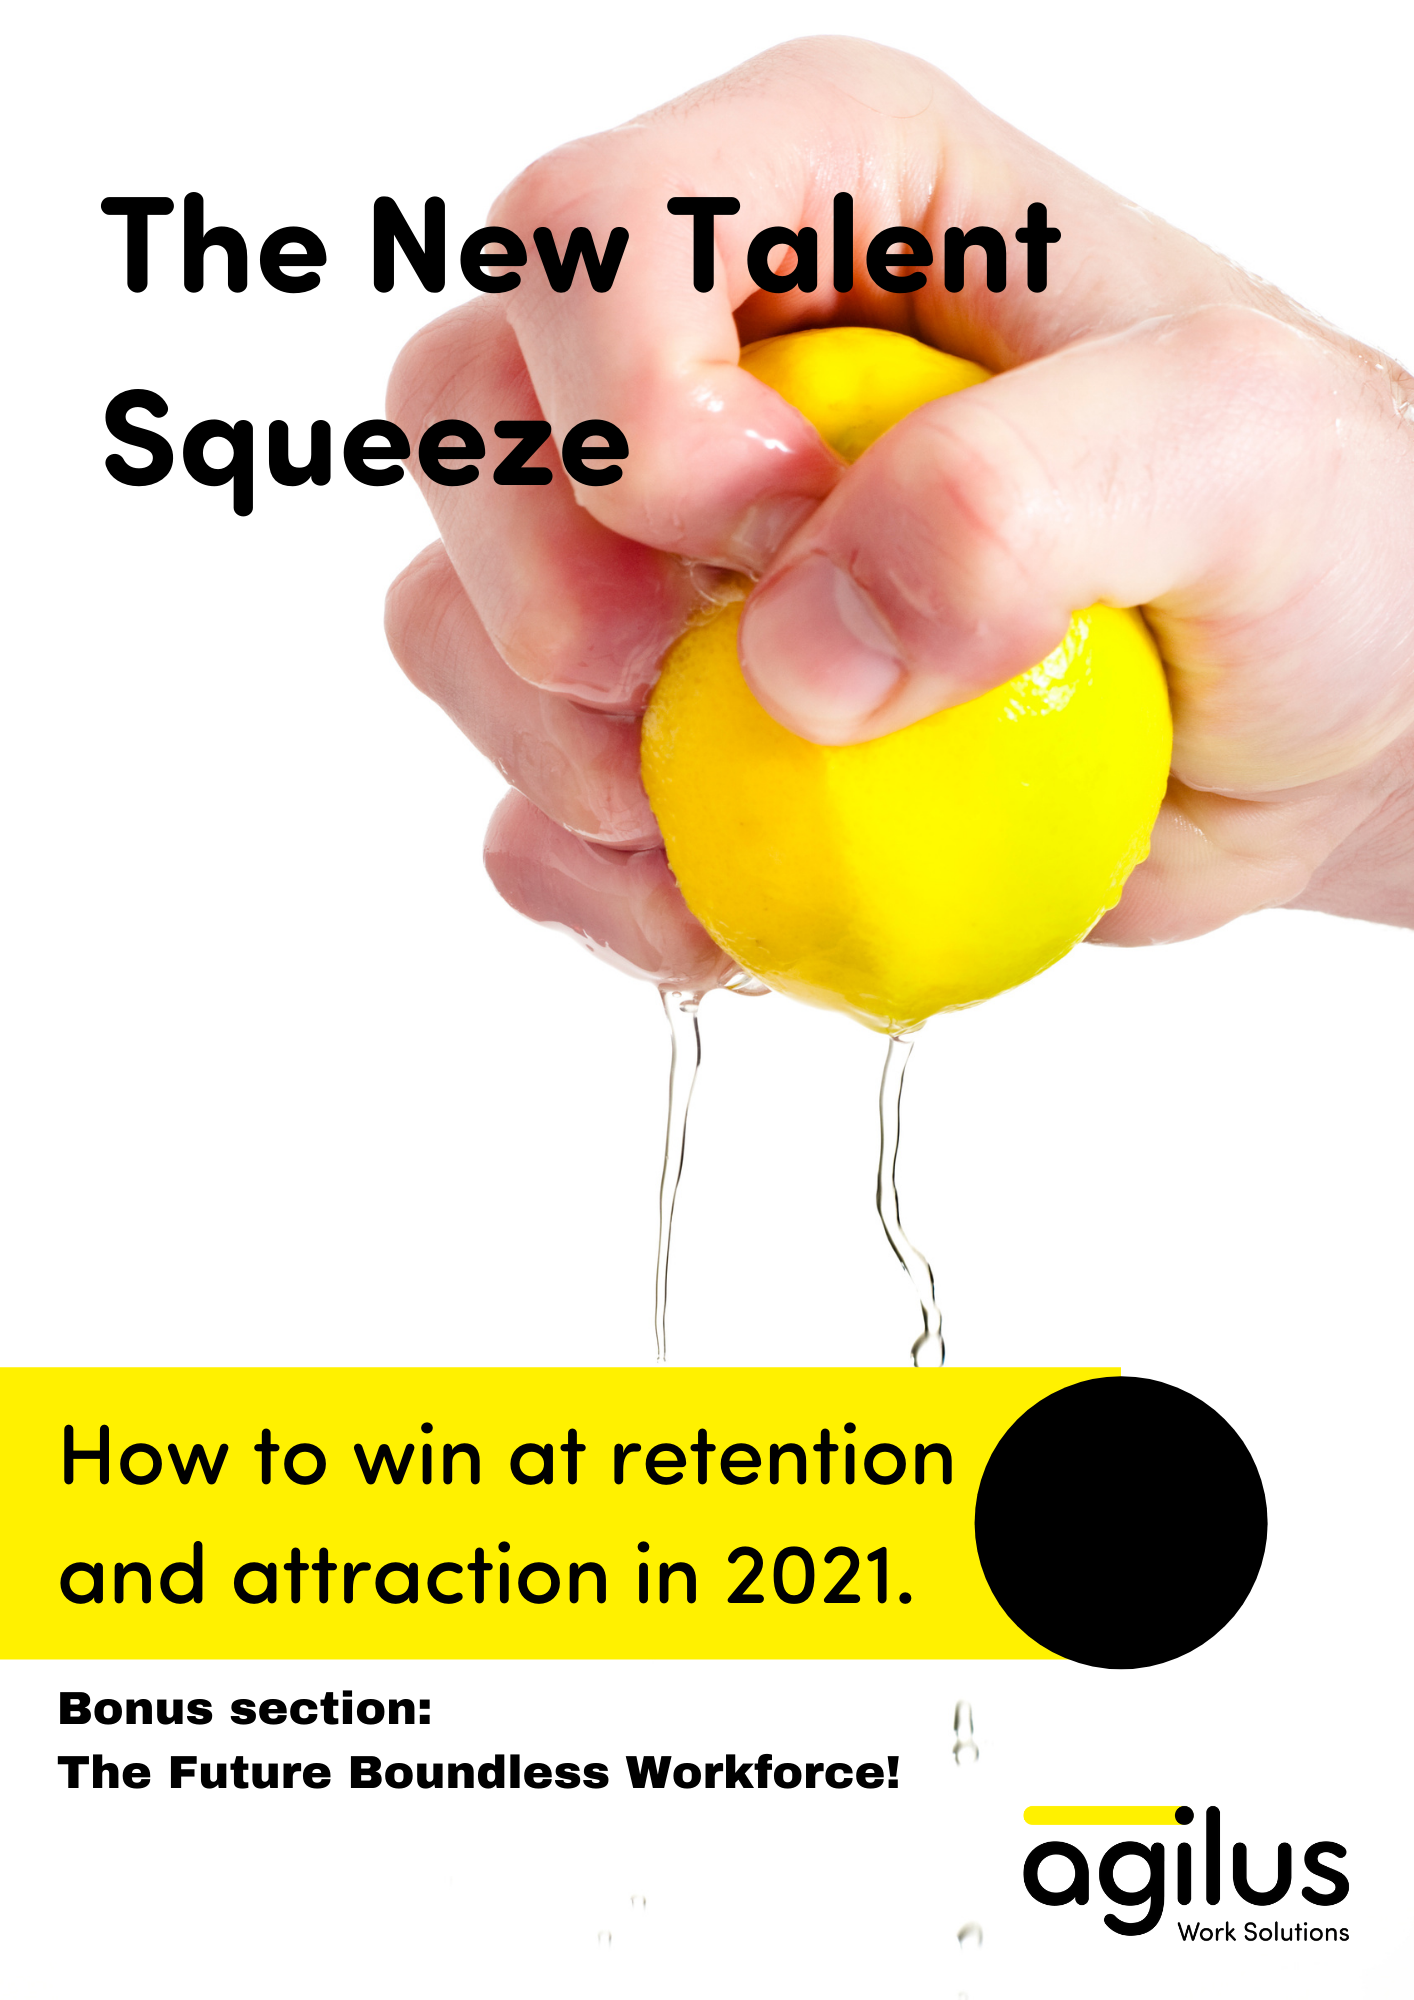 The Talent Squeeze